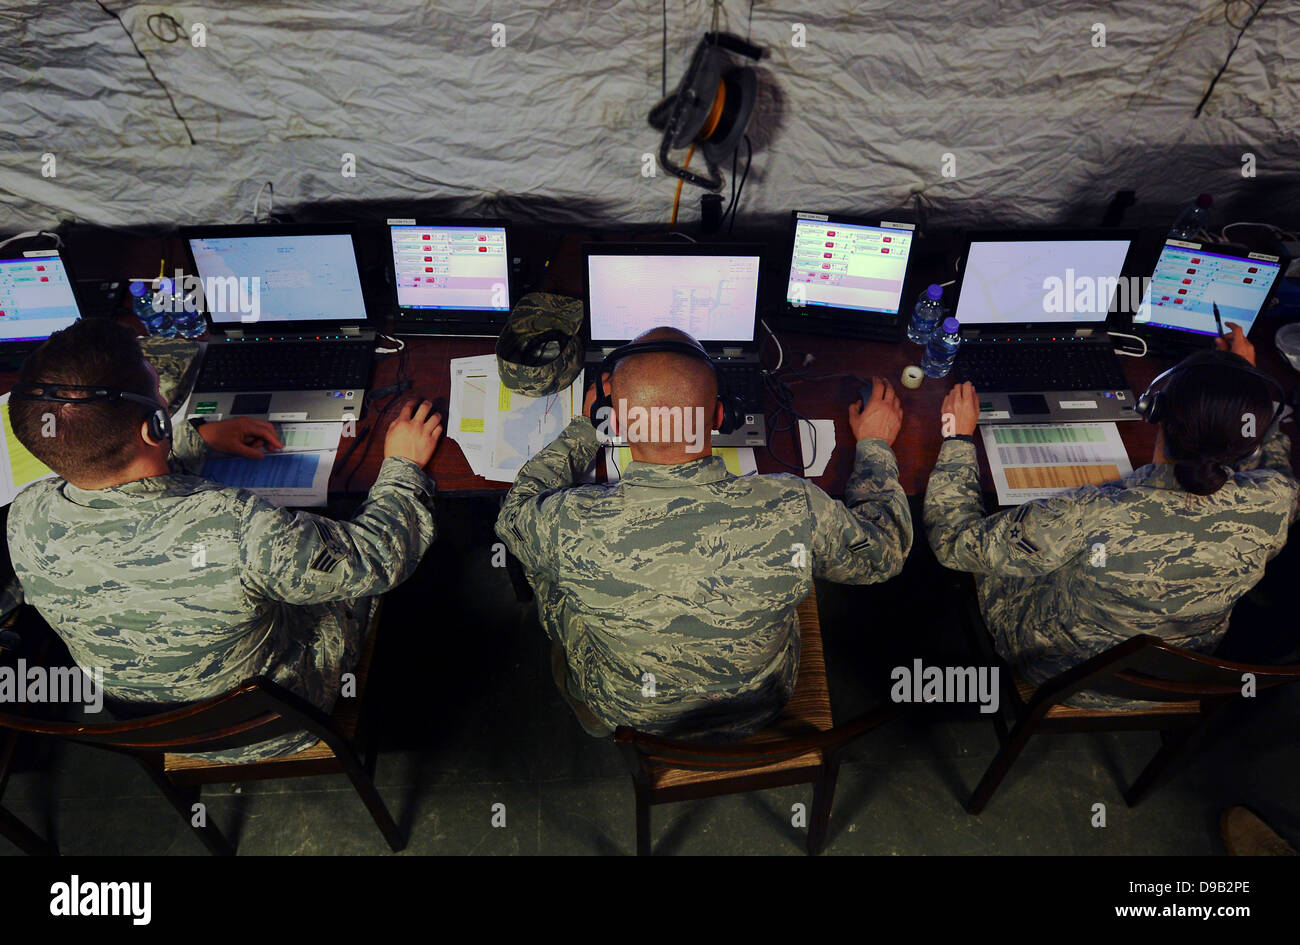 US Air Force airmen react to simulated threats from their regional Air Command Center during exercise Eagle Resolve - Stock Image